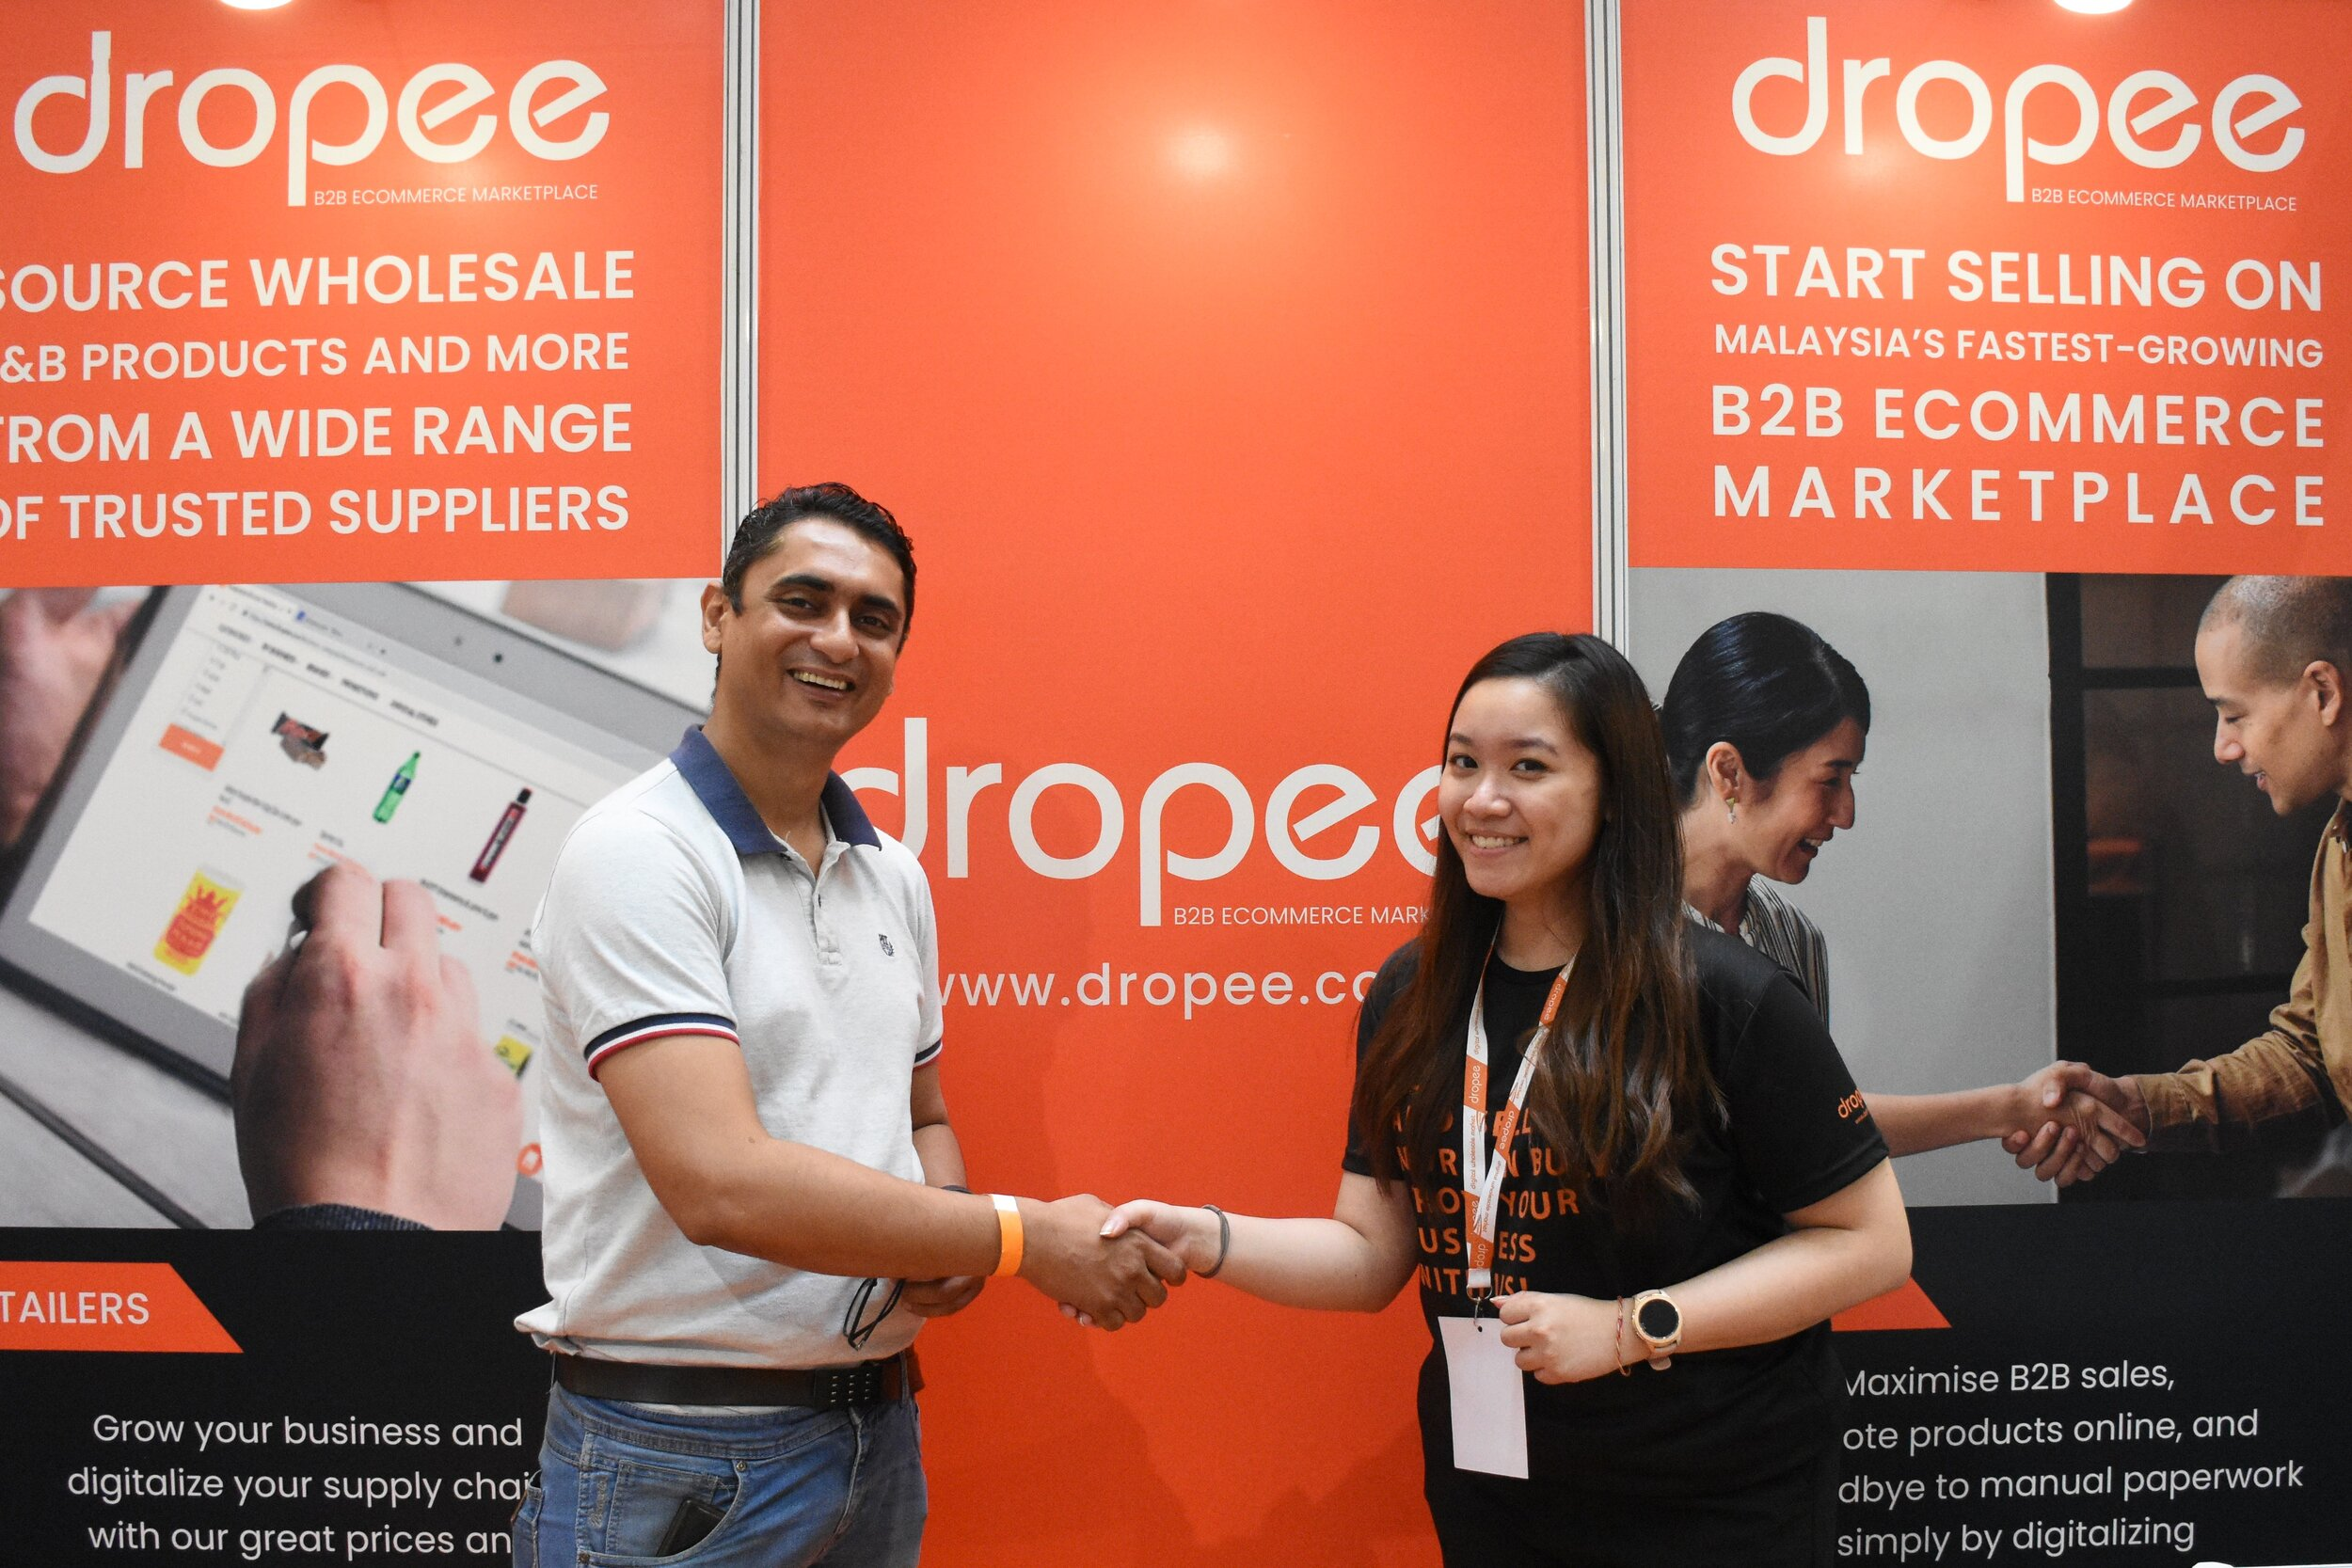 The lucky winner of a RM3000 voucher from Dropee - Gaurav Joshi (Director at Mojo's Kitchen) with Lennise Ng, Dropee's CEO.